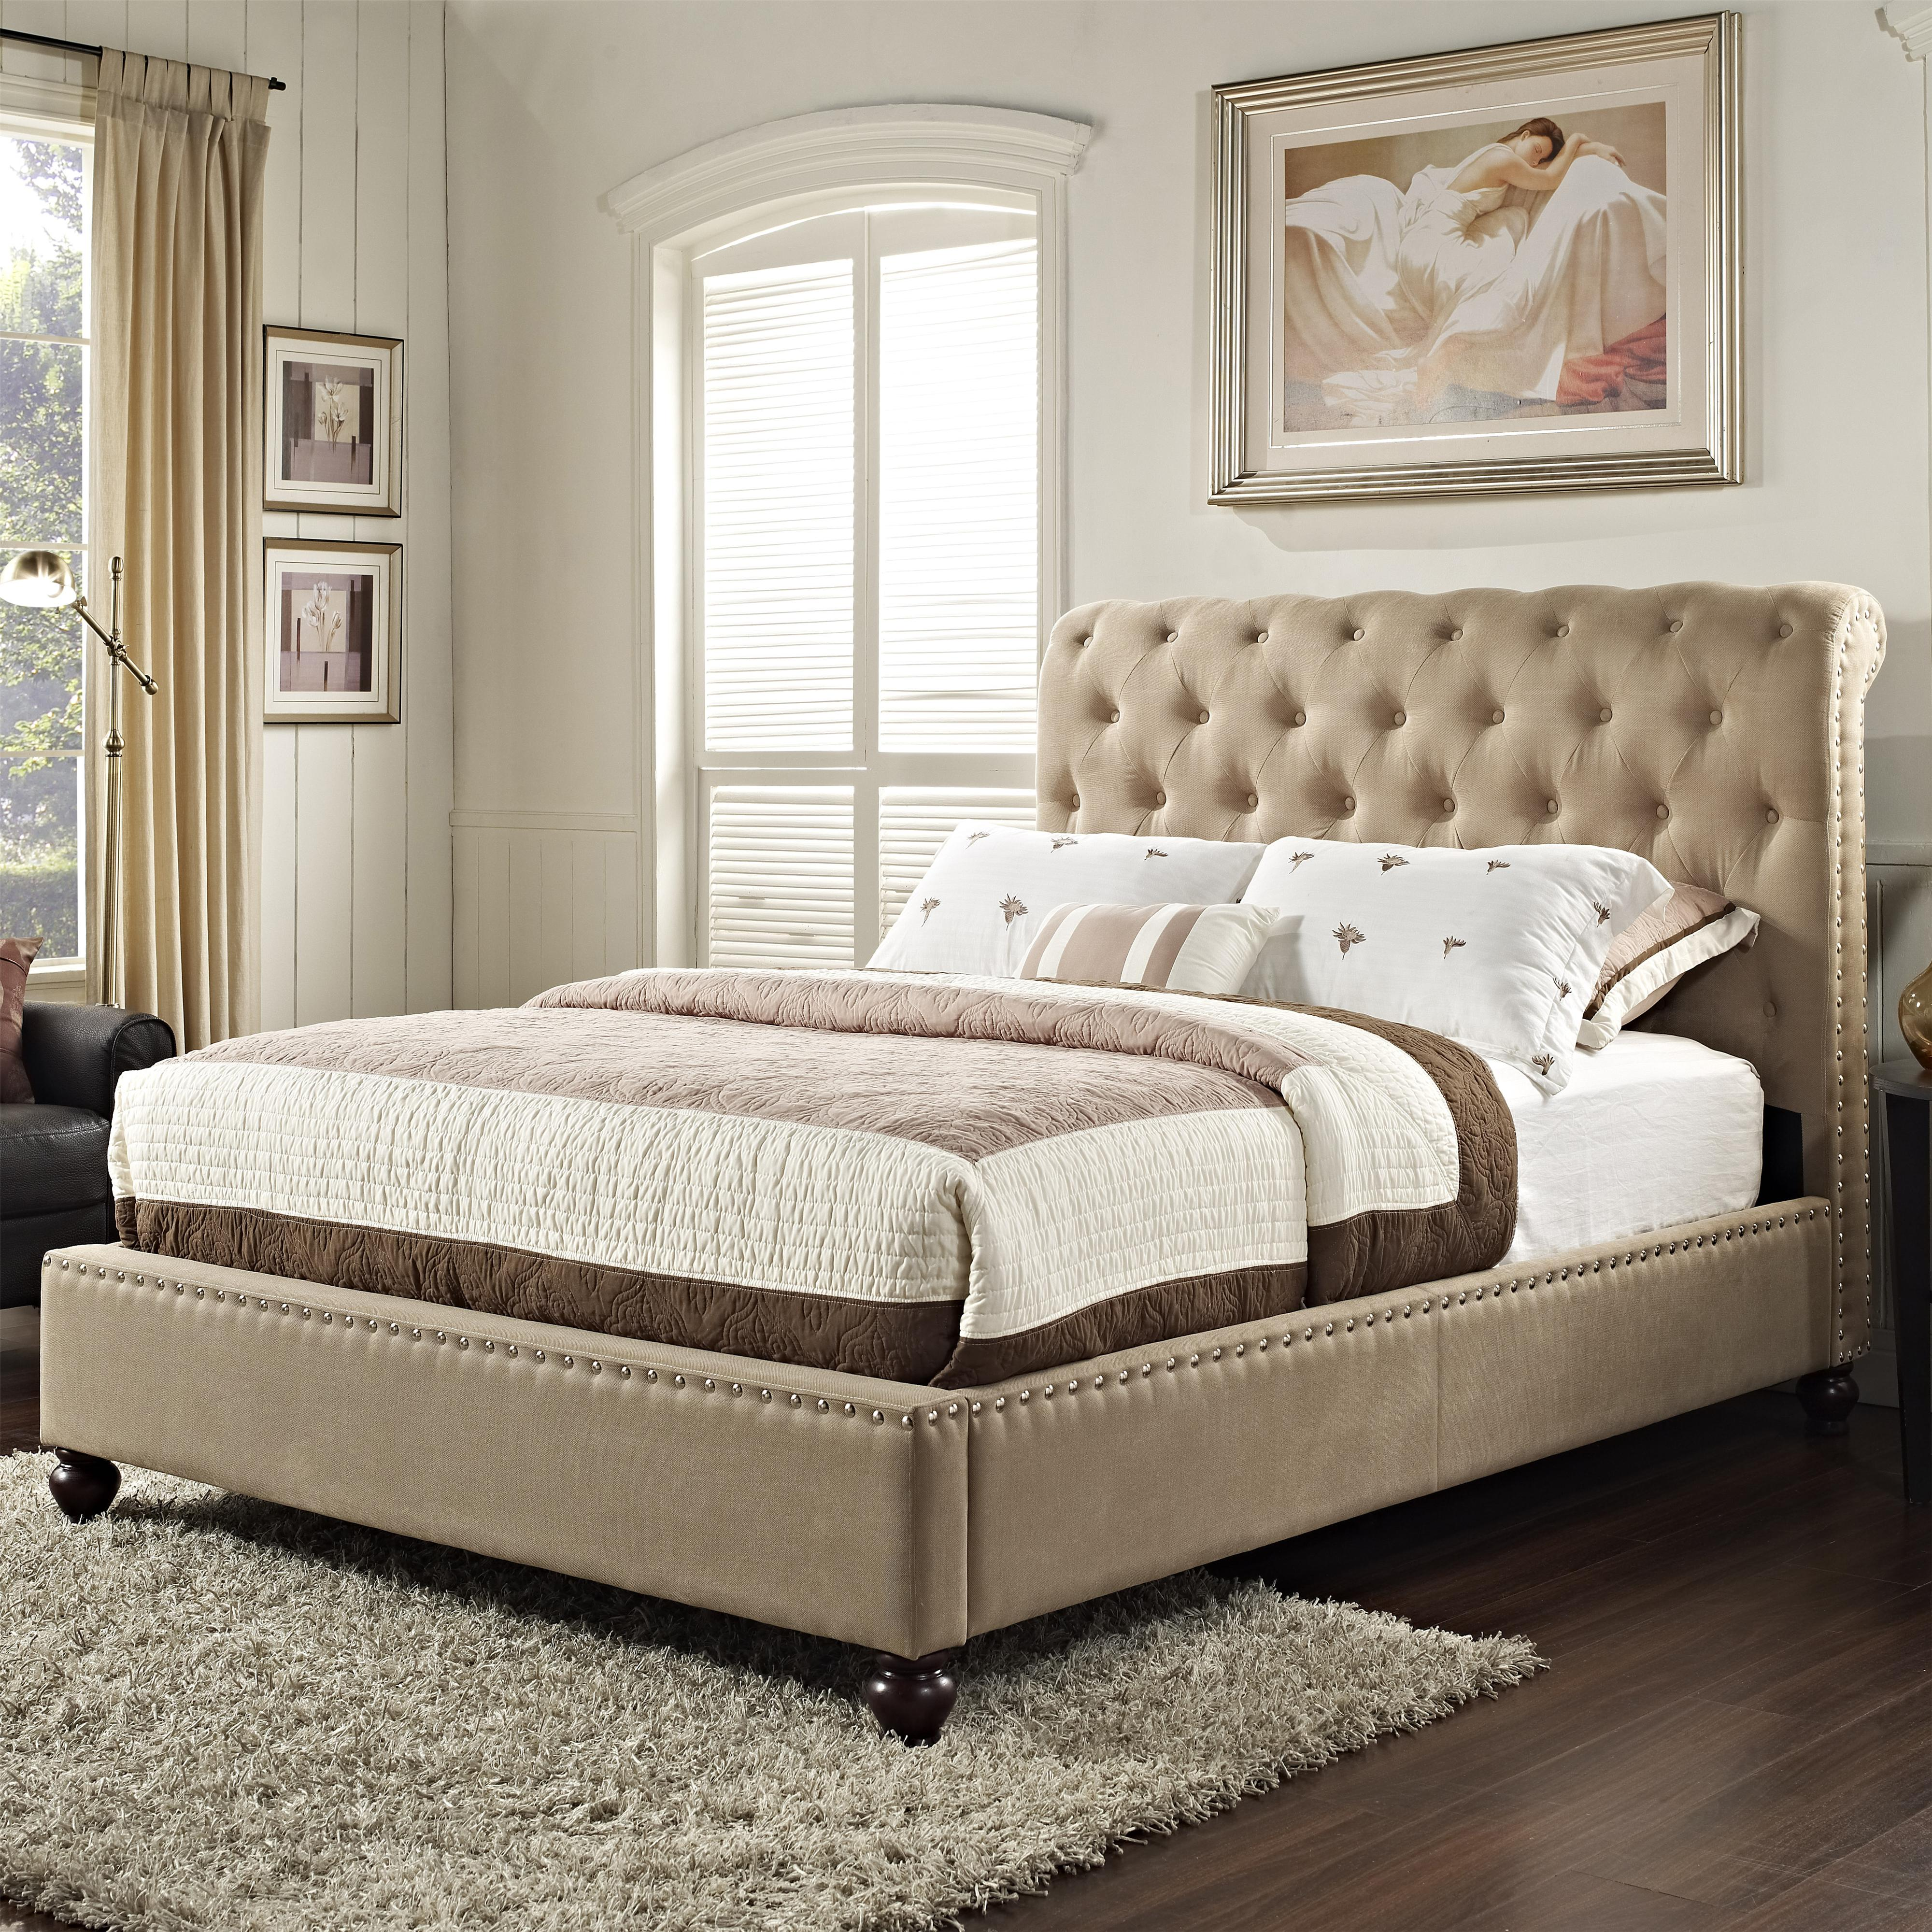 Upholstered King Bed With Rolled And Tufted Headboard By